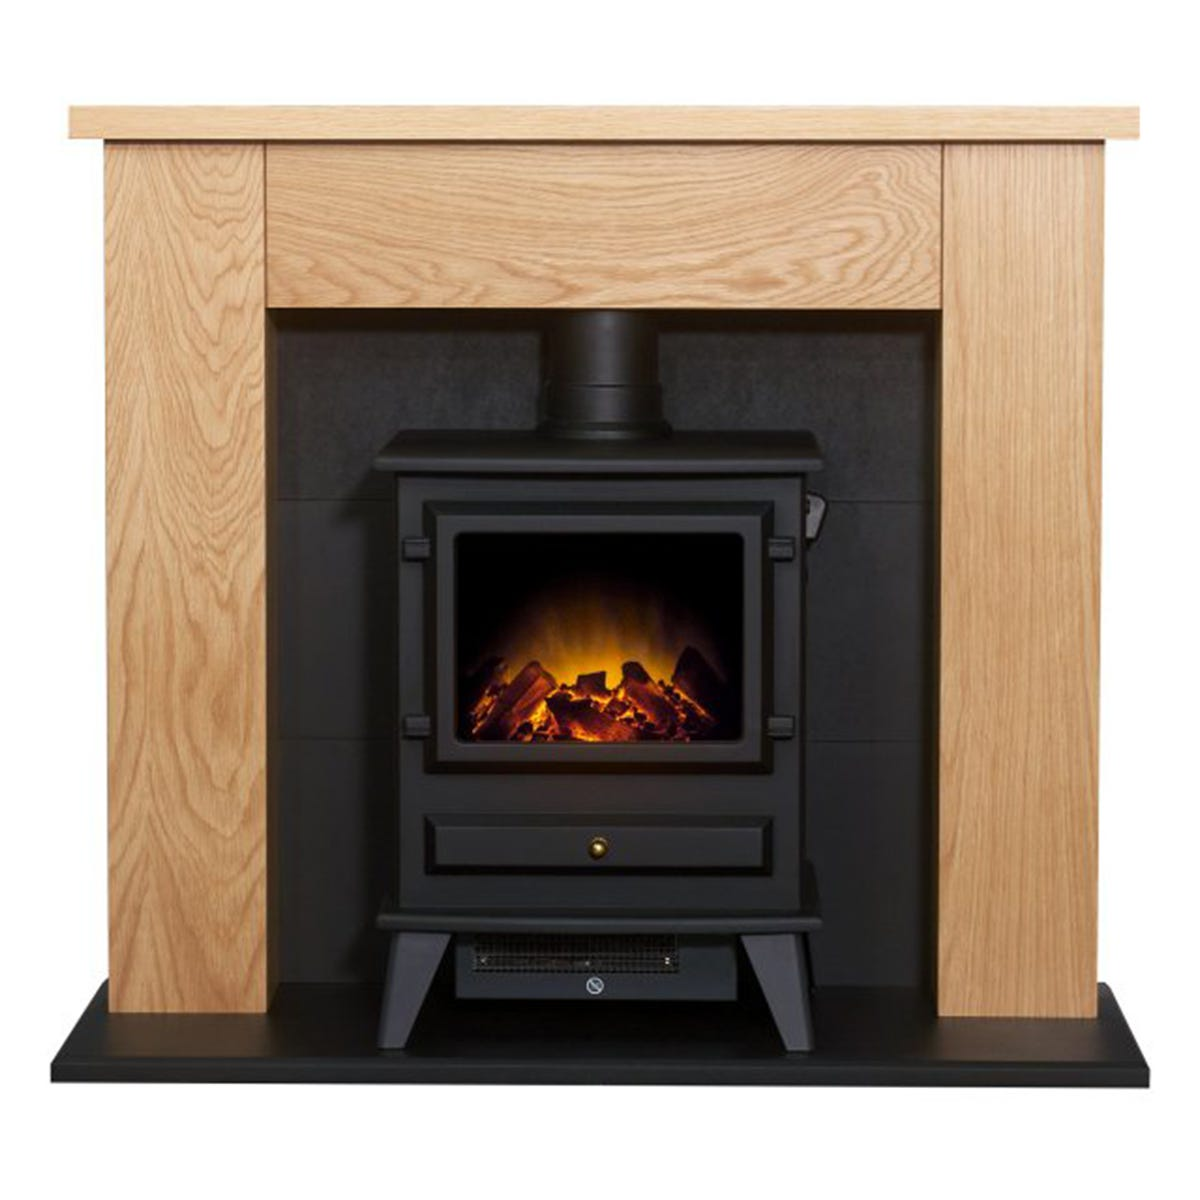 Adam Chester Stove Fireplace in Oak & Black with Hudson Electric Stove in Black 39 Inch